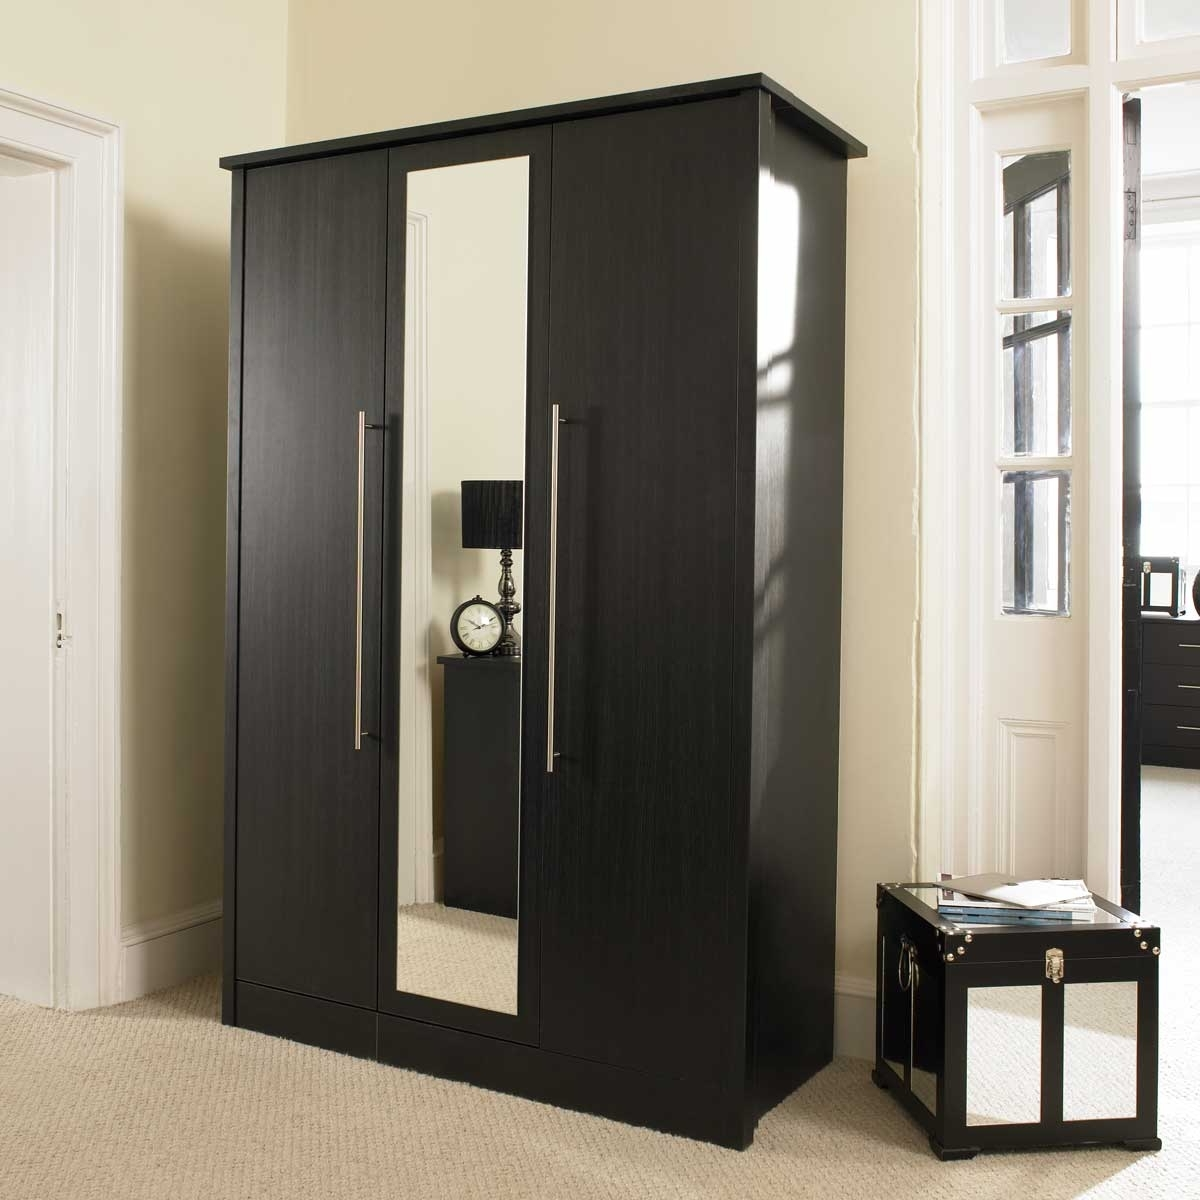 Large Black Wardrobes With Regard To Trendy Luxury Bedroom With Black Wardrobe With Mirror Doors, Top Wardrobe (View 7 of 15)